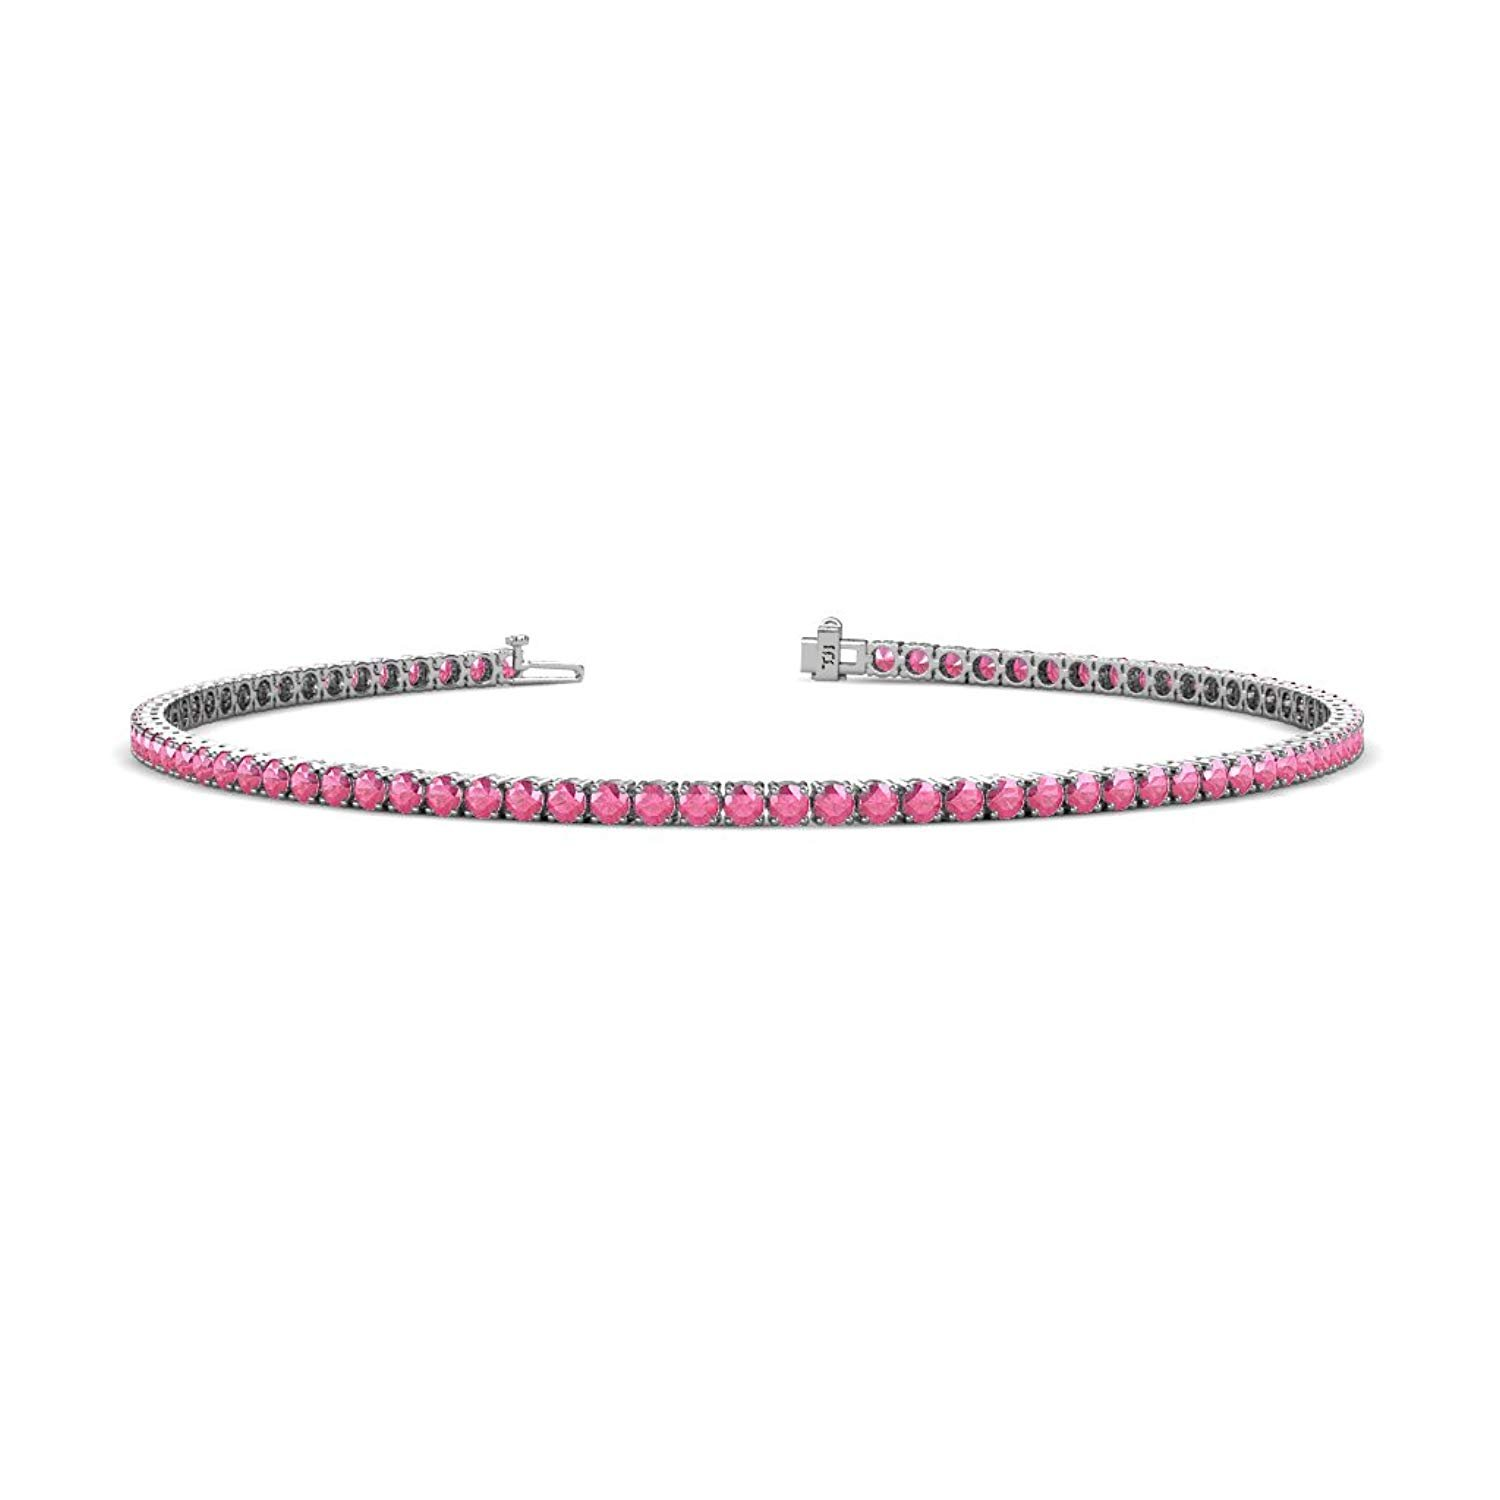 Pink Tourmaline 2mm 4-Prong Tennis Bracelet 1.43 cttw in 14K White Gold by TriJewels